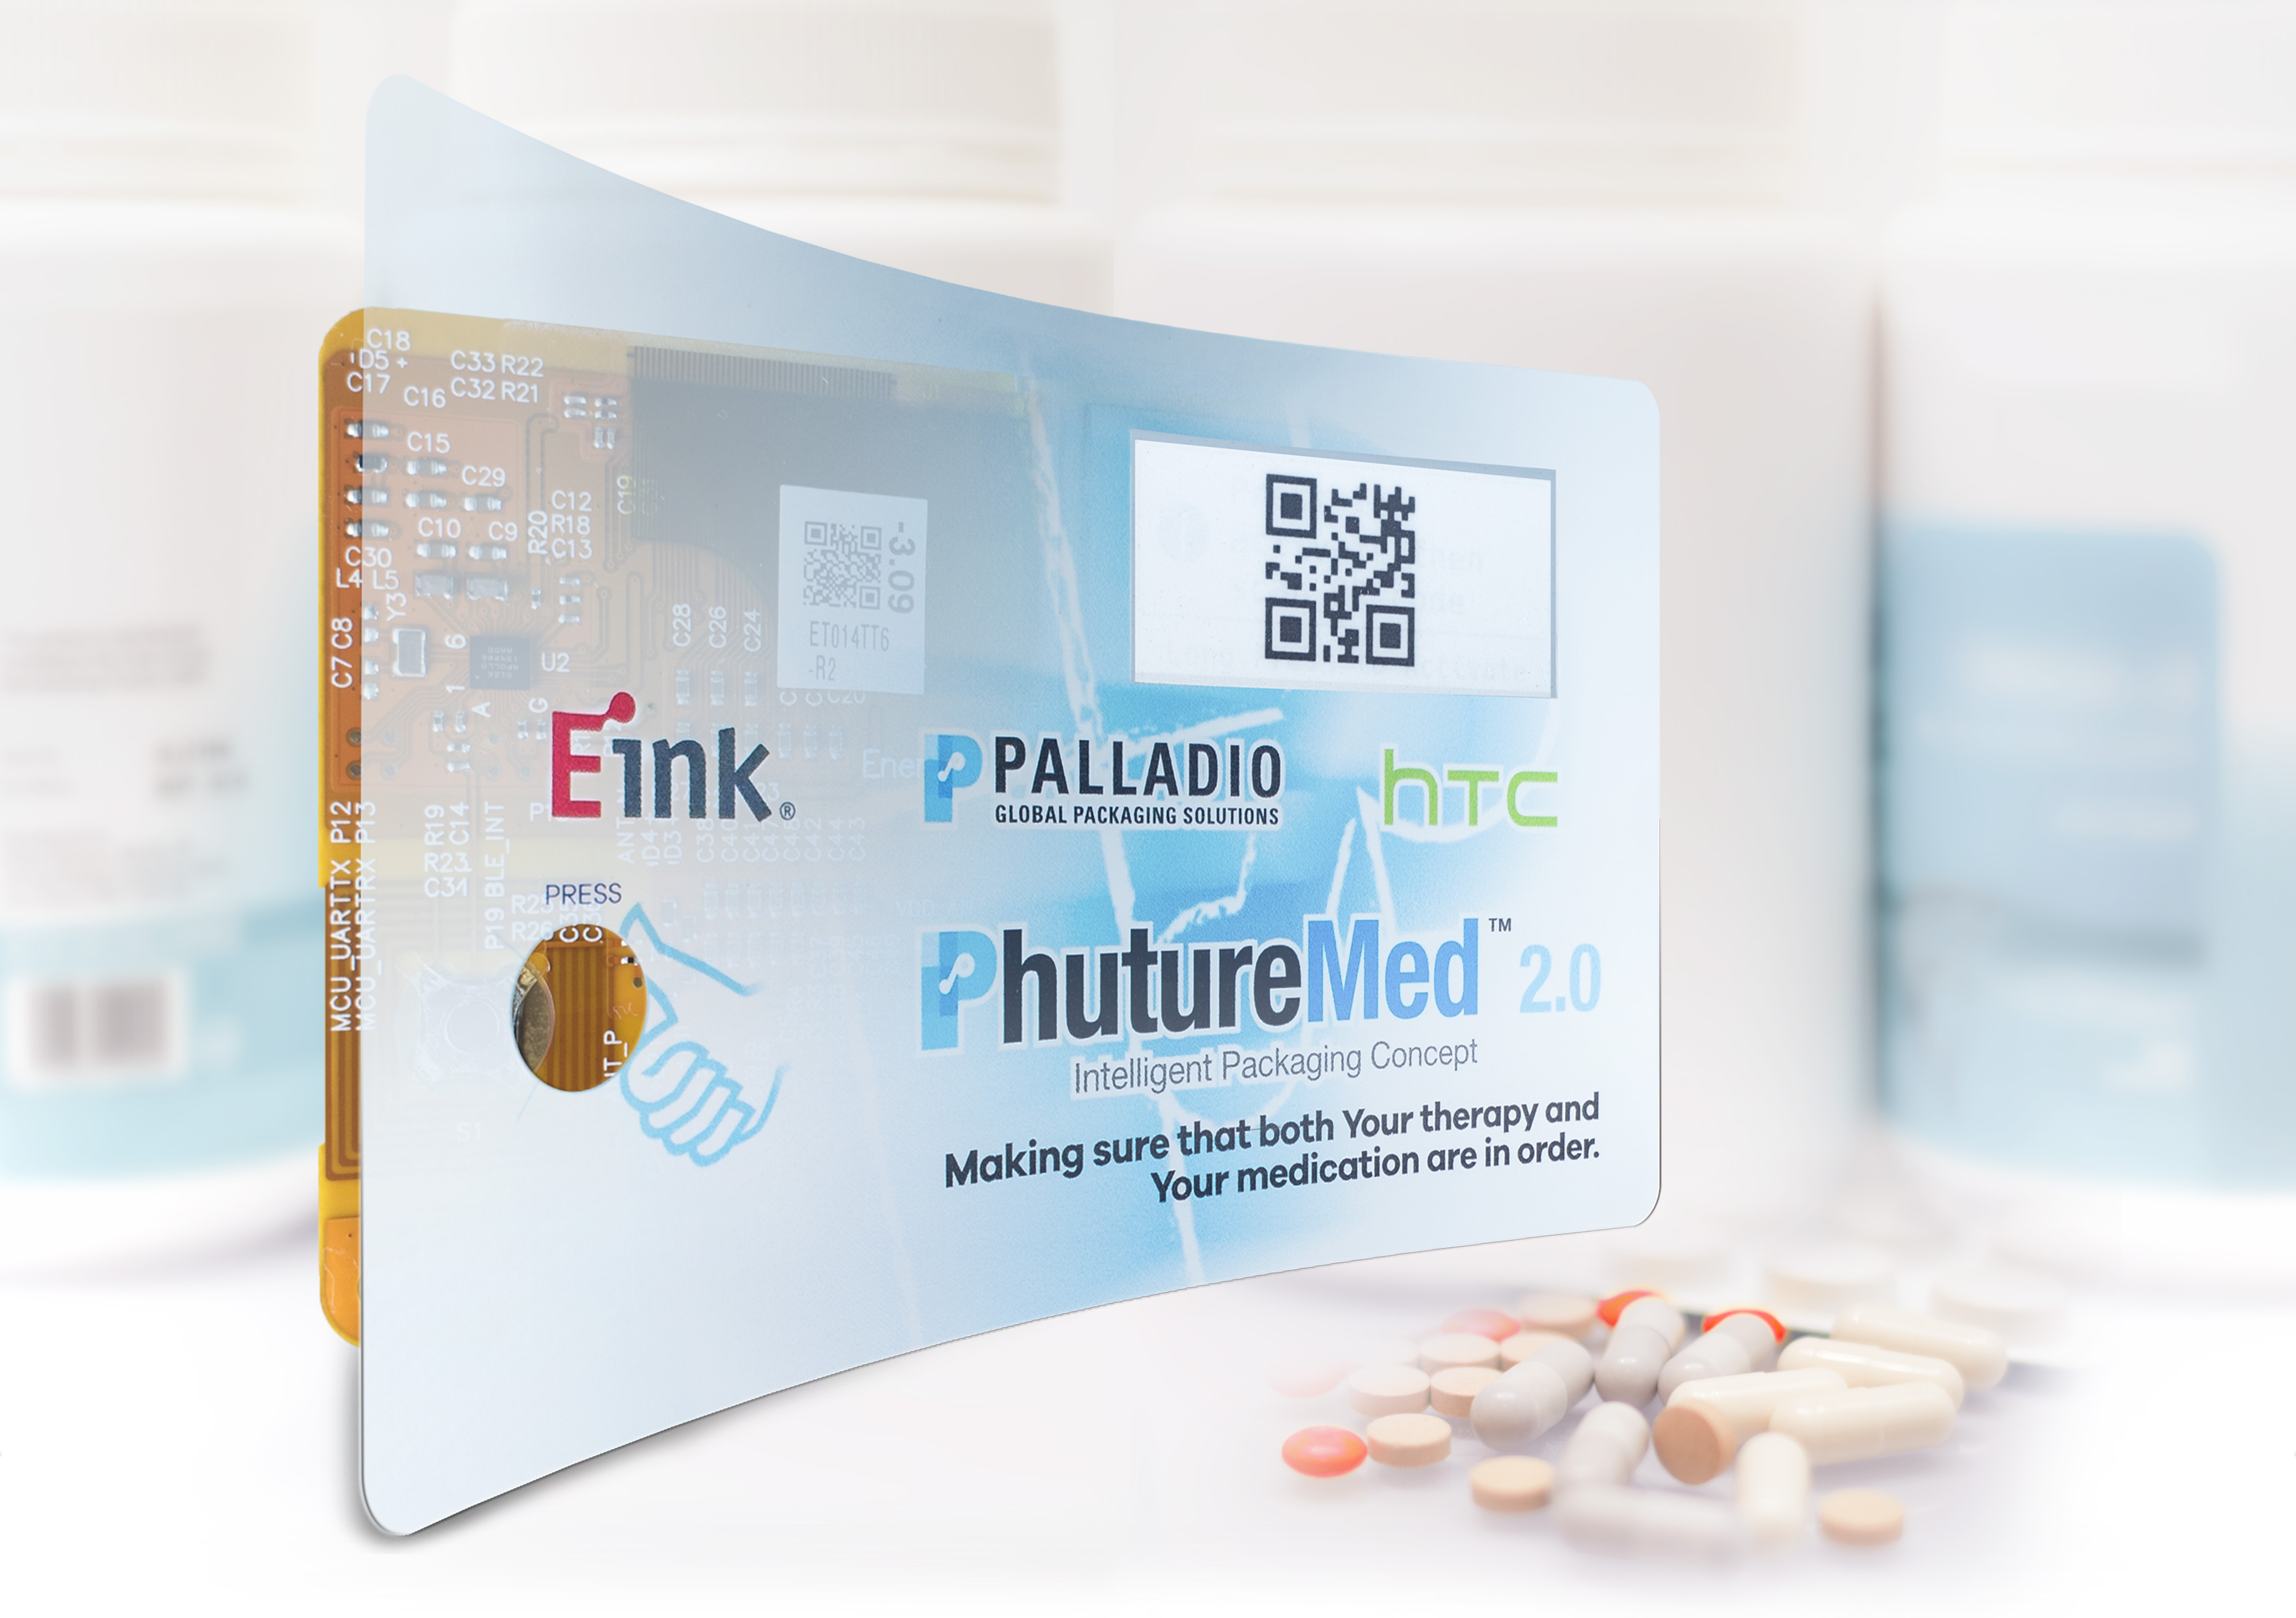 e ink htc and palladio collaborate to develop smart packaging label for iot based healthcare services business wire